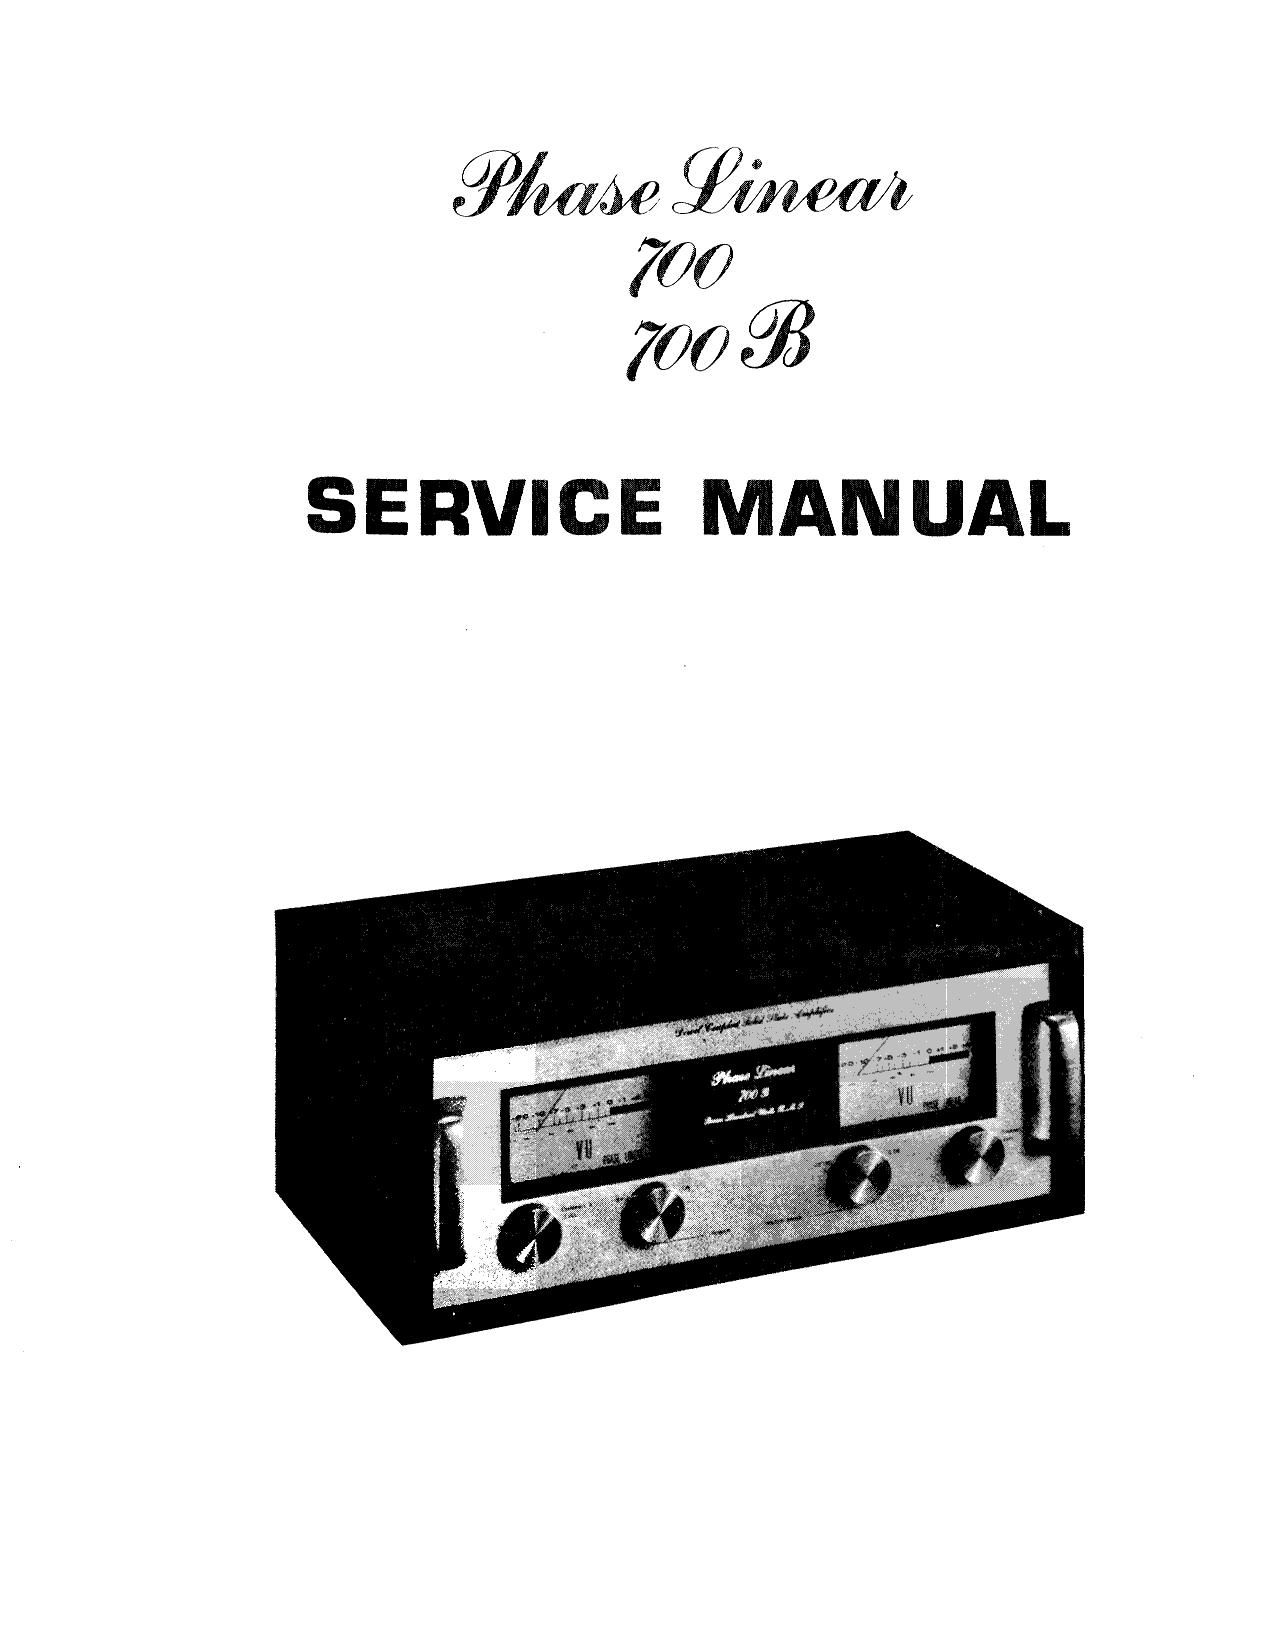 phase linear 700 700b service manual rh audioservicemanuals com phase linear 200 service manual phase linear 700 service manual